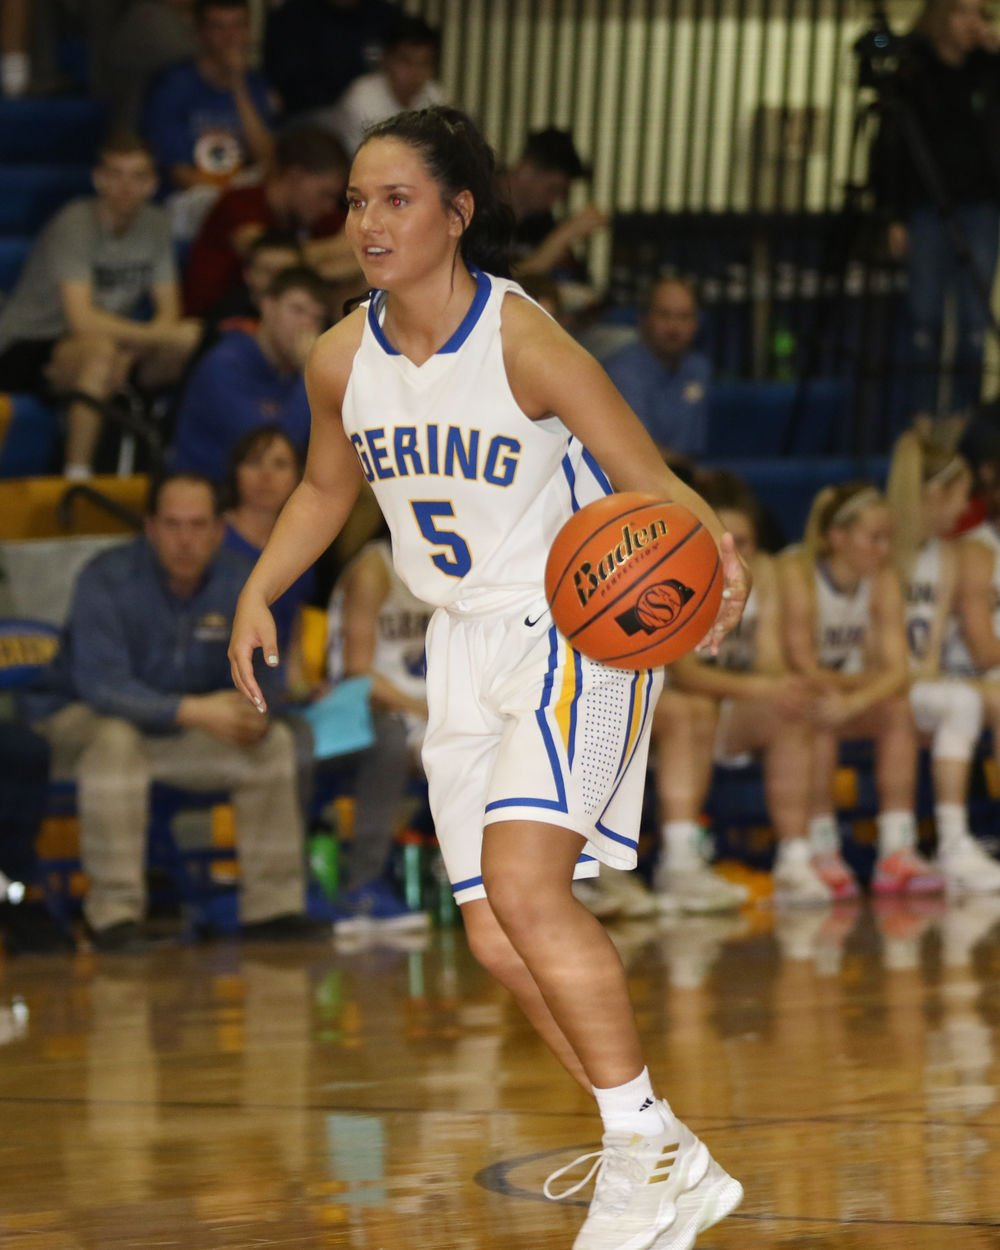 Gering's Lopez to play basketball at Eastern Wyoming College